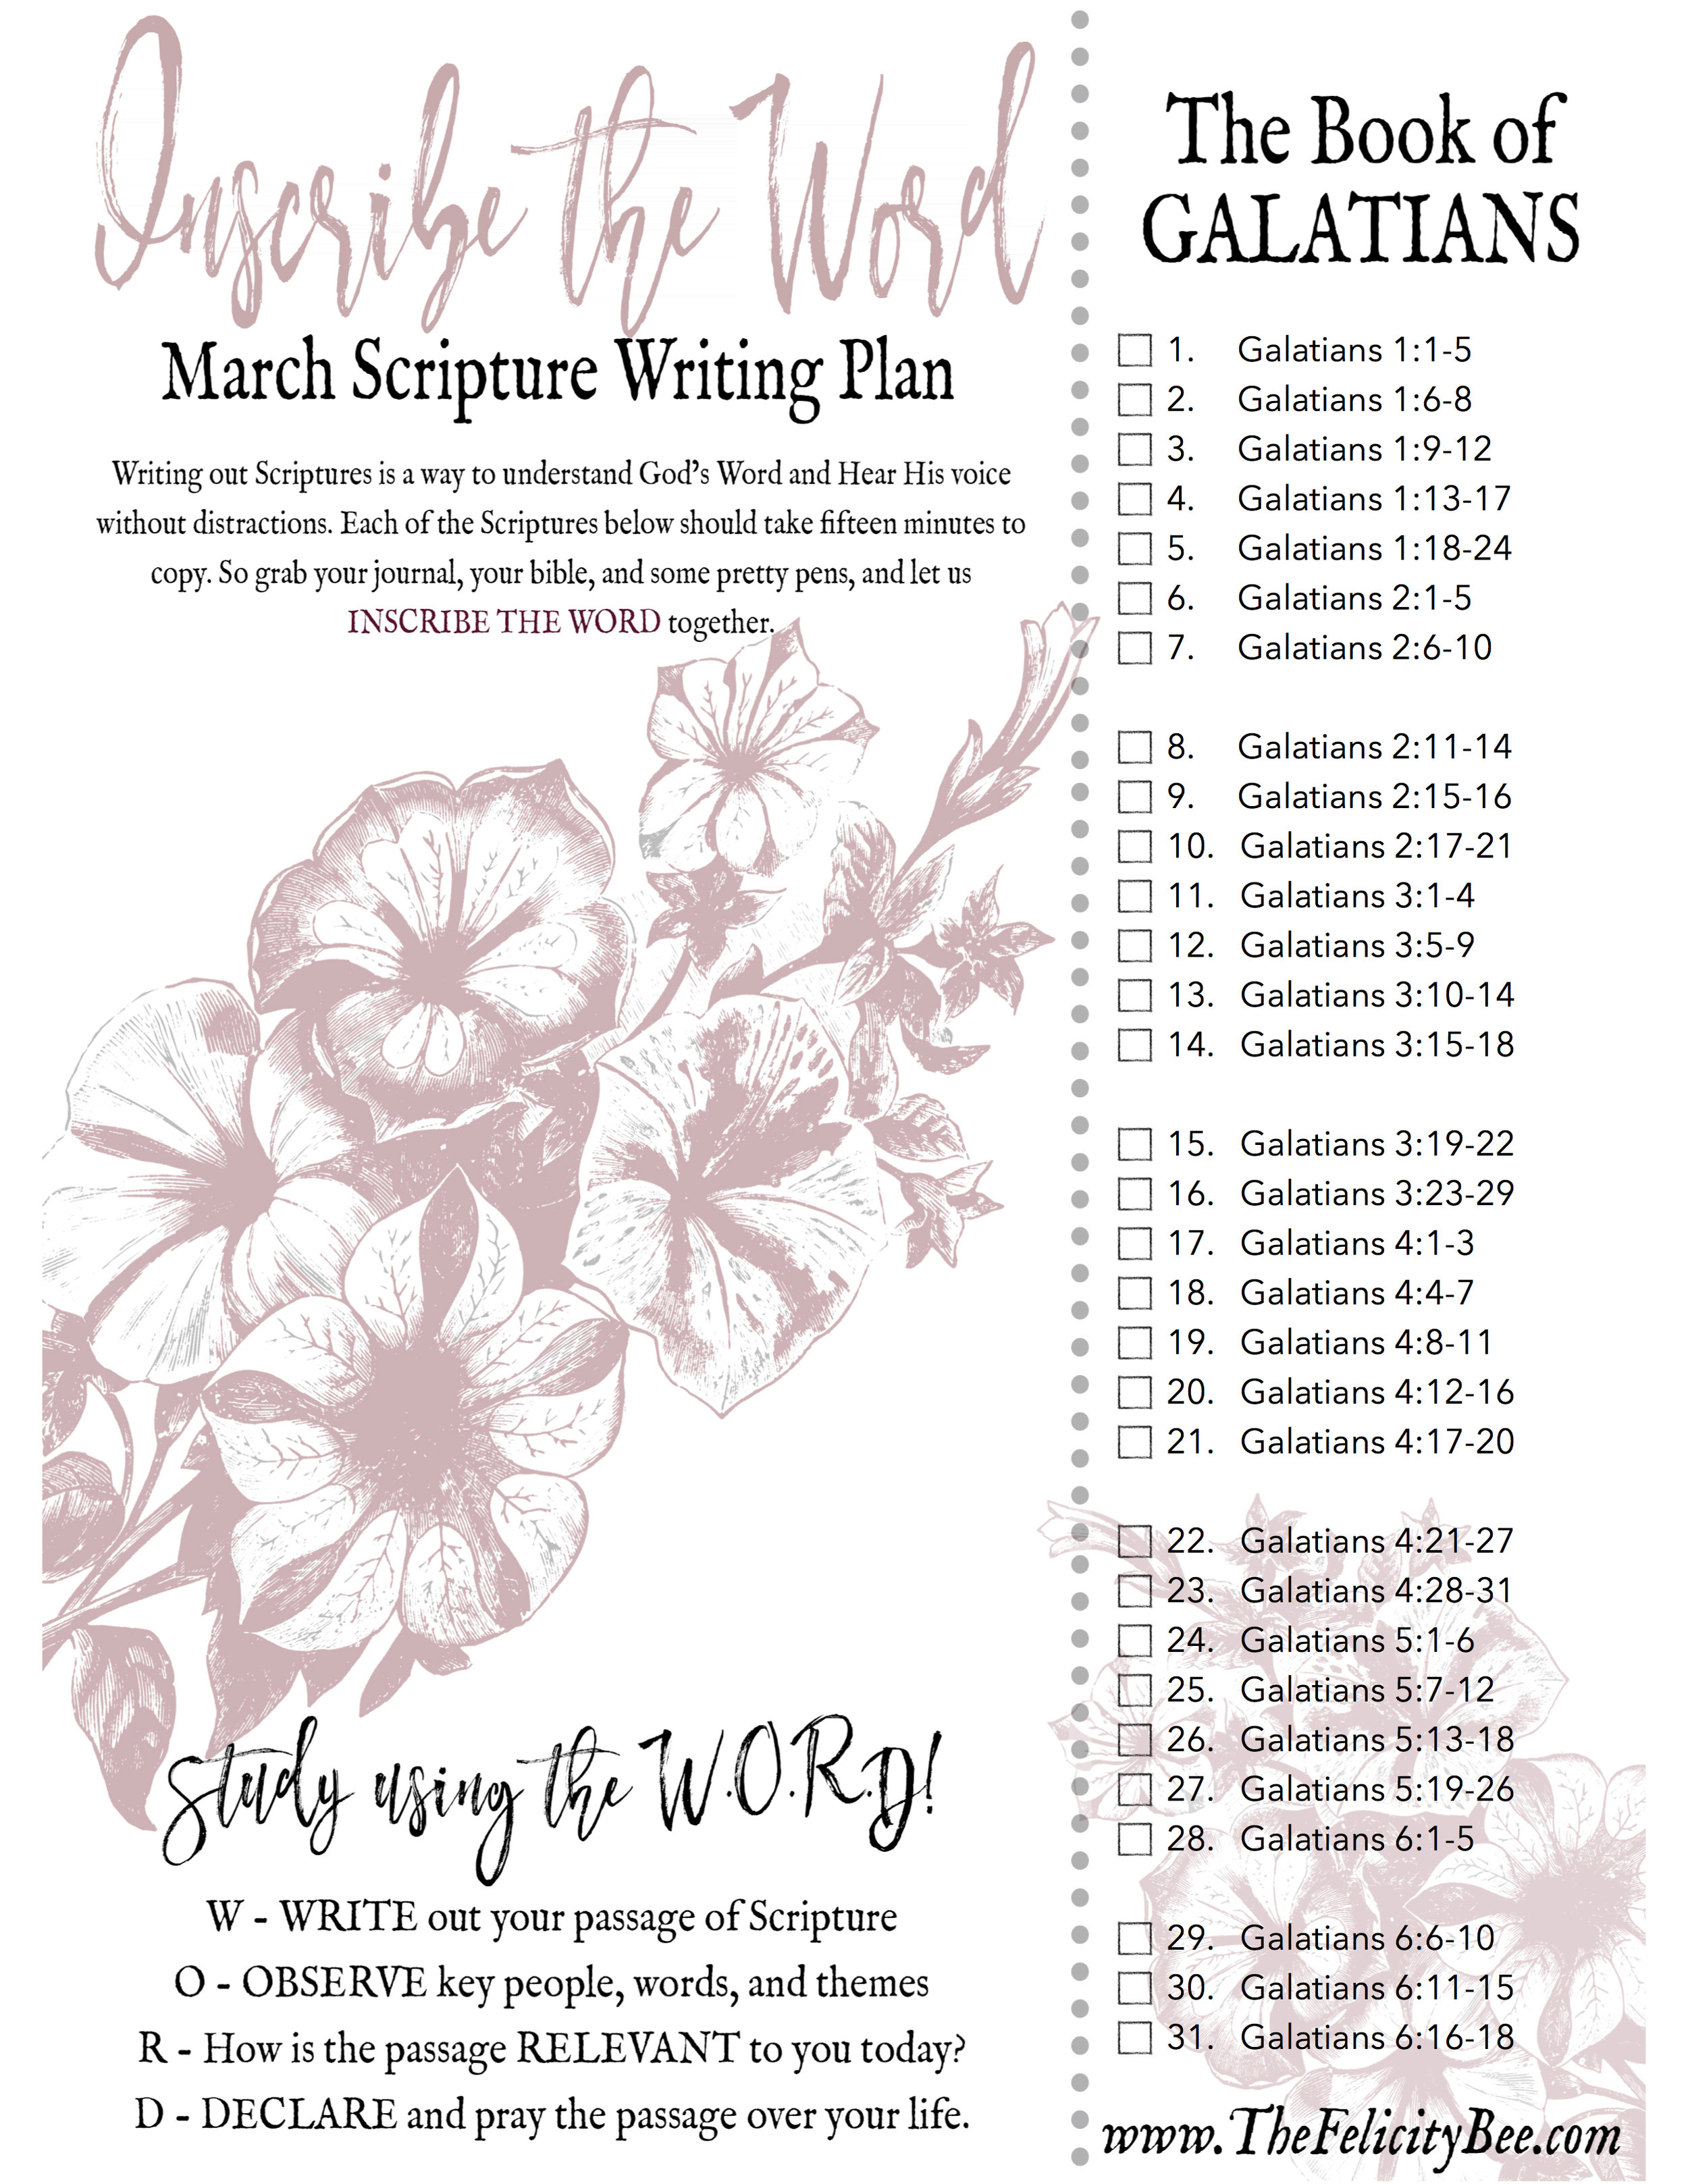 CLICK HERE TO DOWNLOAD  YOUR MARCH SCRIPTURE WRITING PLAN.